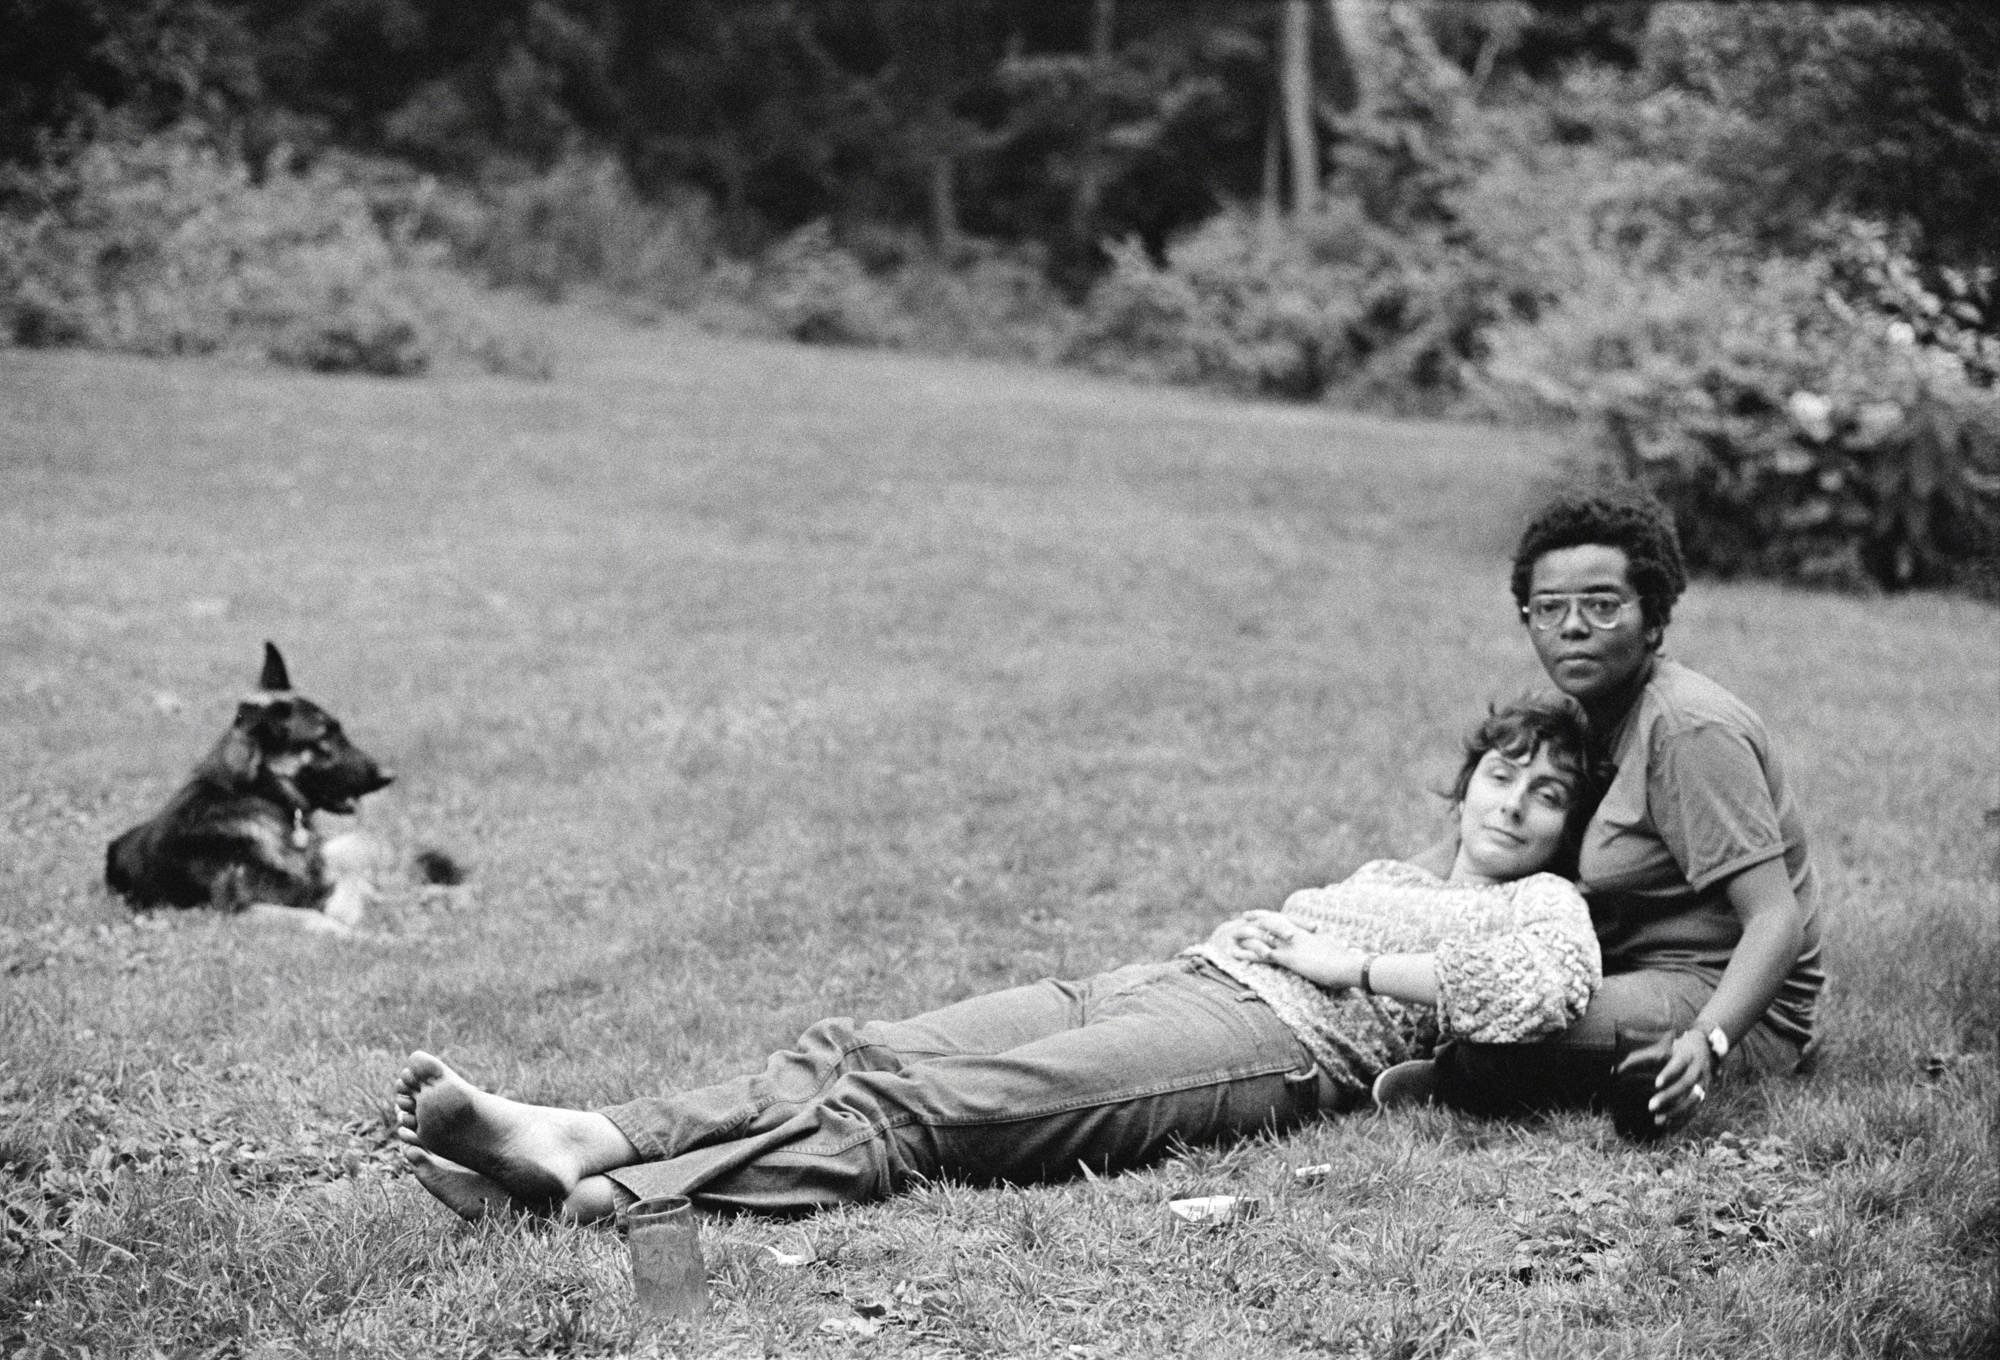 Mychelle and Lee with Zach, the dog, 1972, Cornwall-on-Hudson, NY